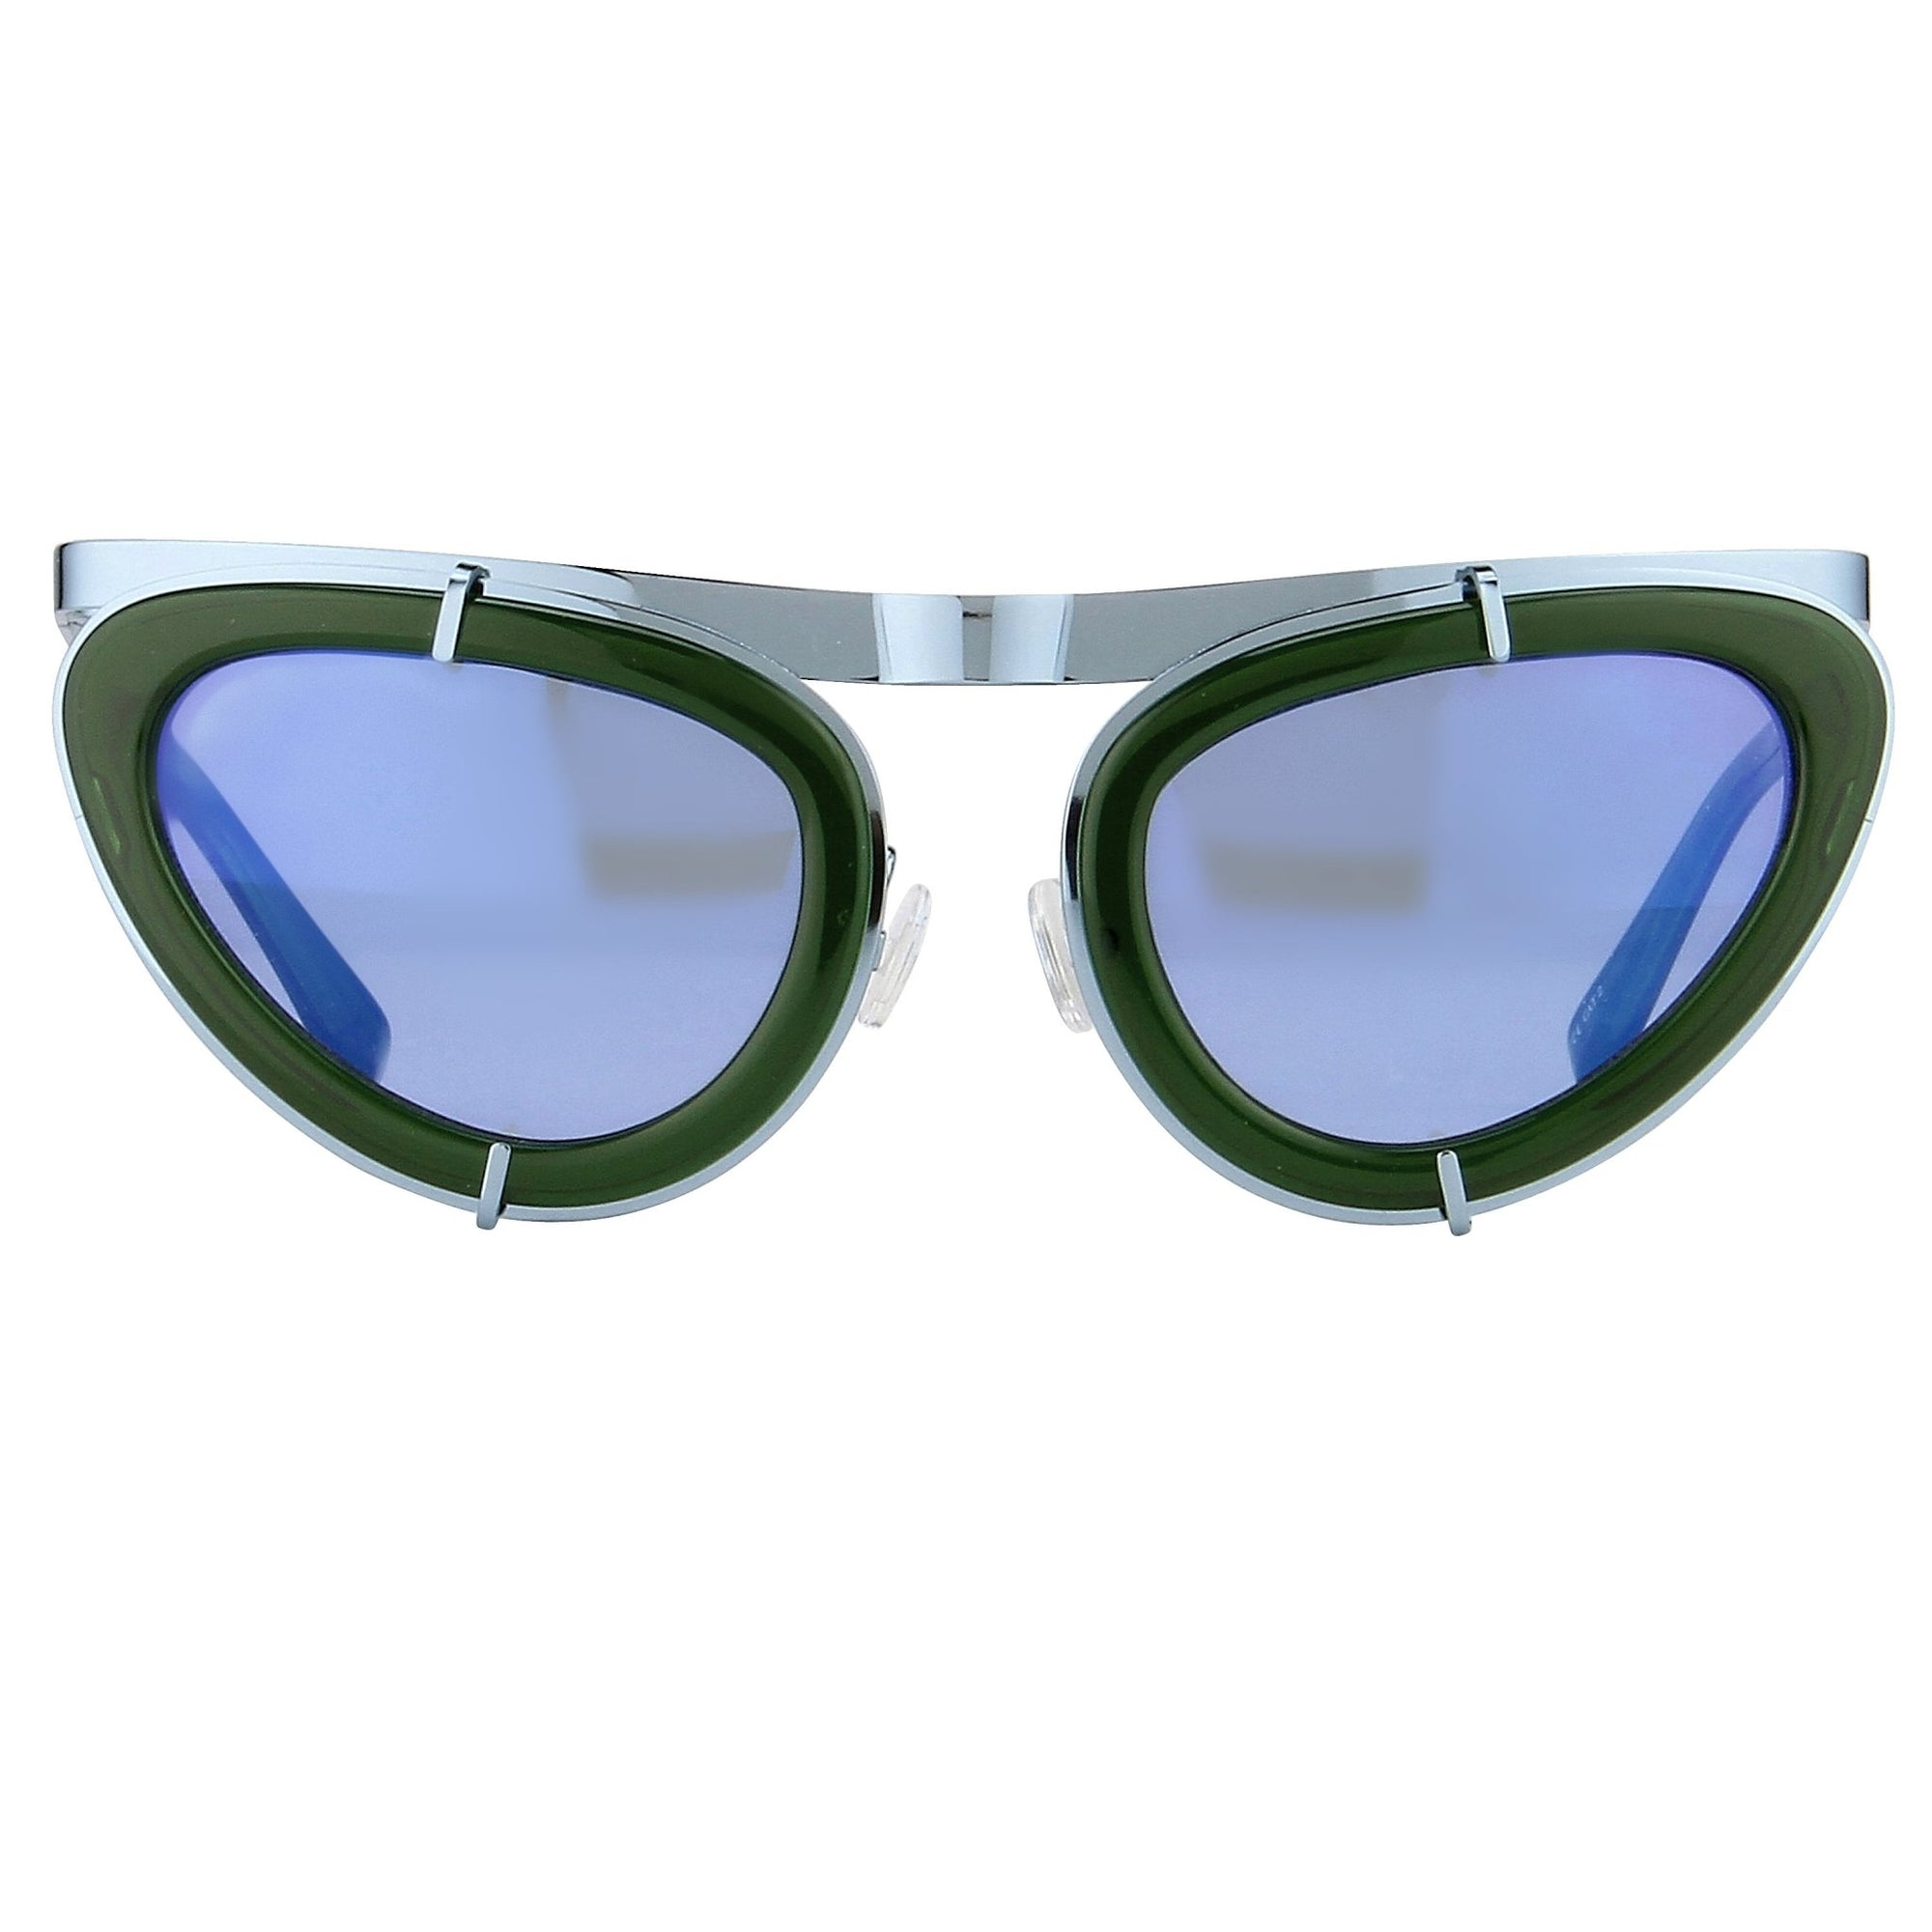 Erdem Women Sunglasses Cat Eye Green Blue and Blue Mirror Lenses - EDM3C4SUN - Watches & Crystals